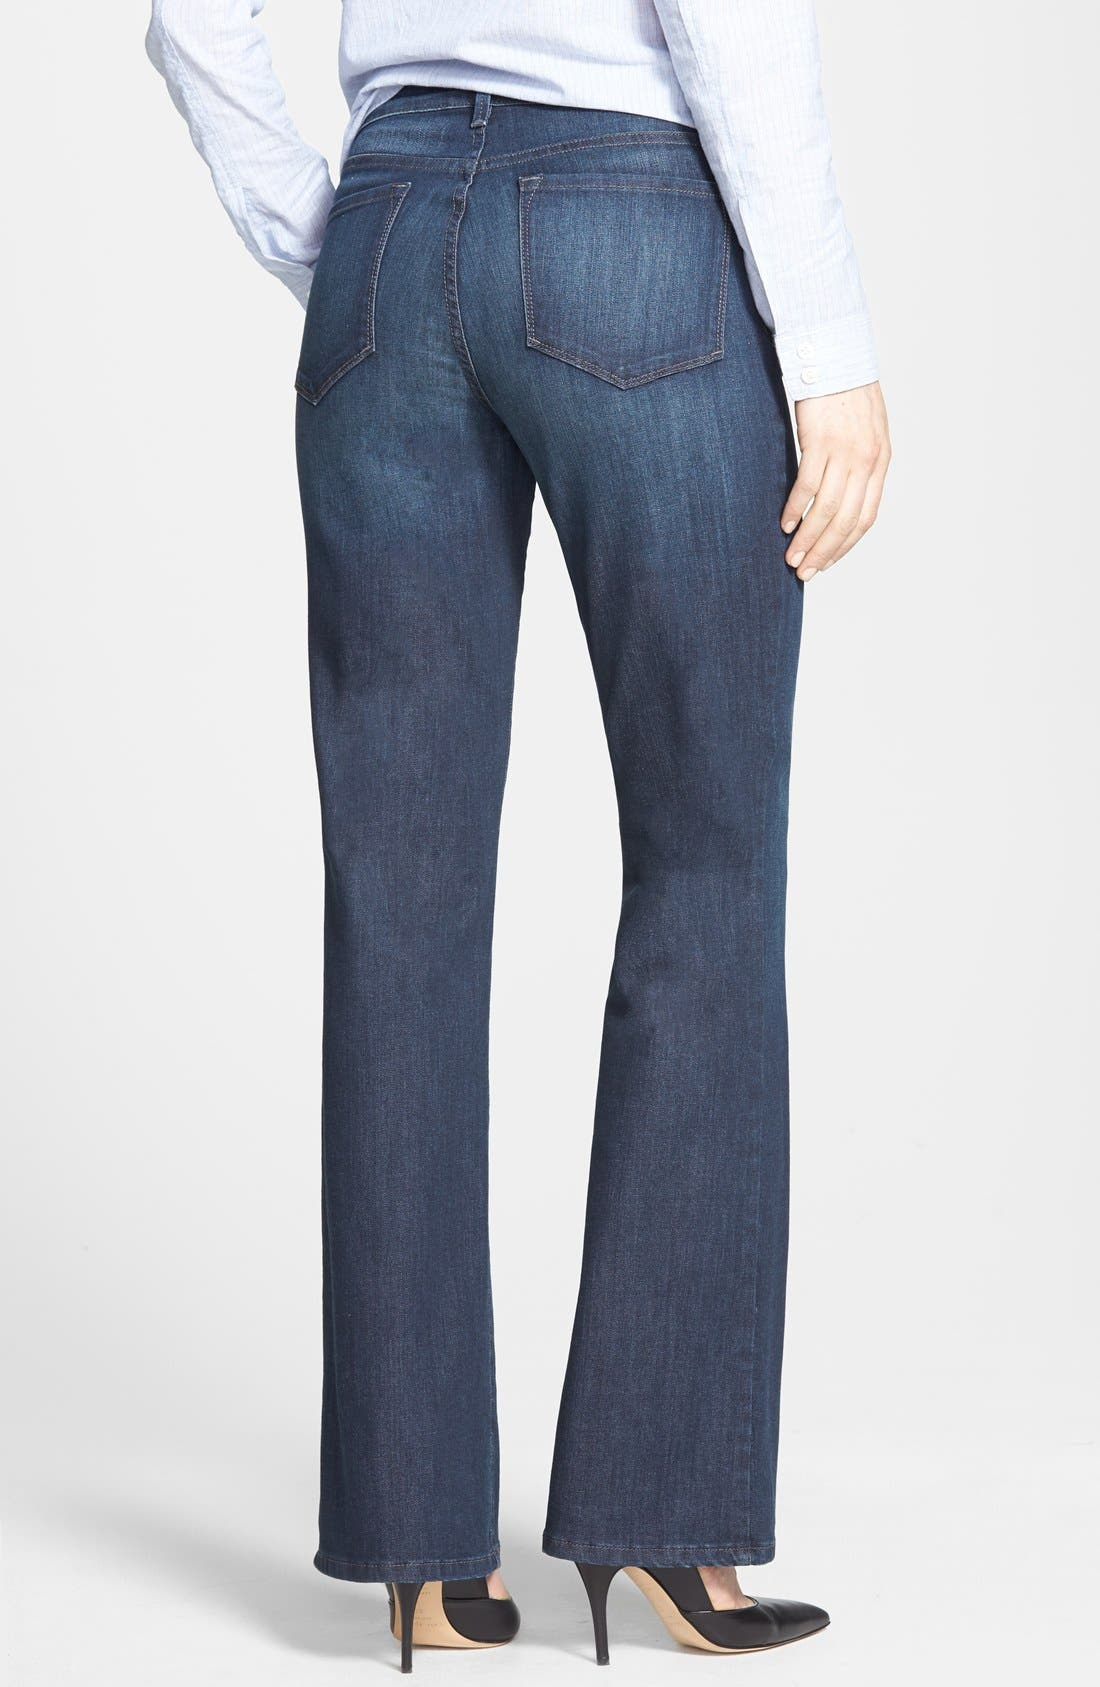 Alternate Image 2  - NYDJ 'Barbara' Stretch Bootcut Jeans (Harrington) (Petite)